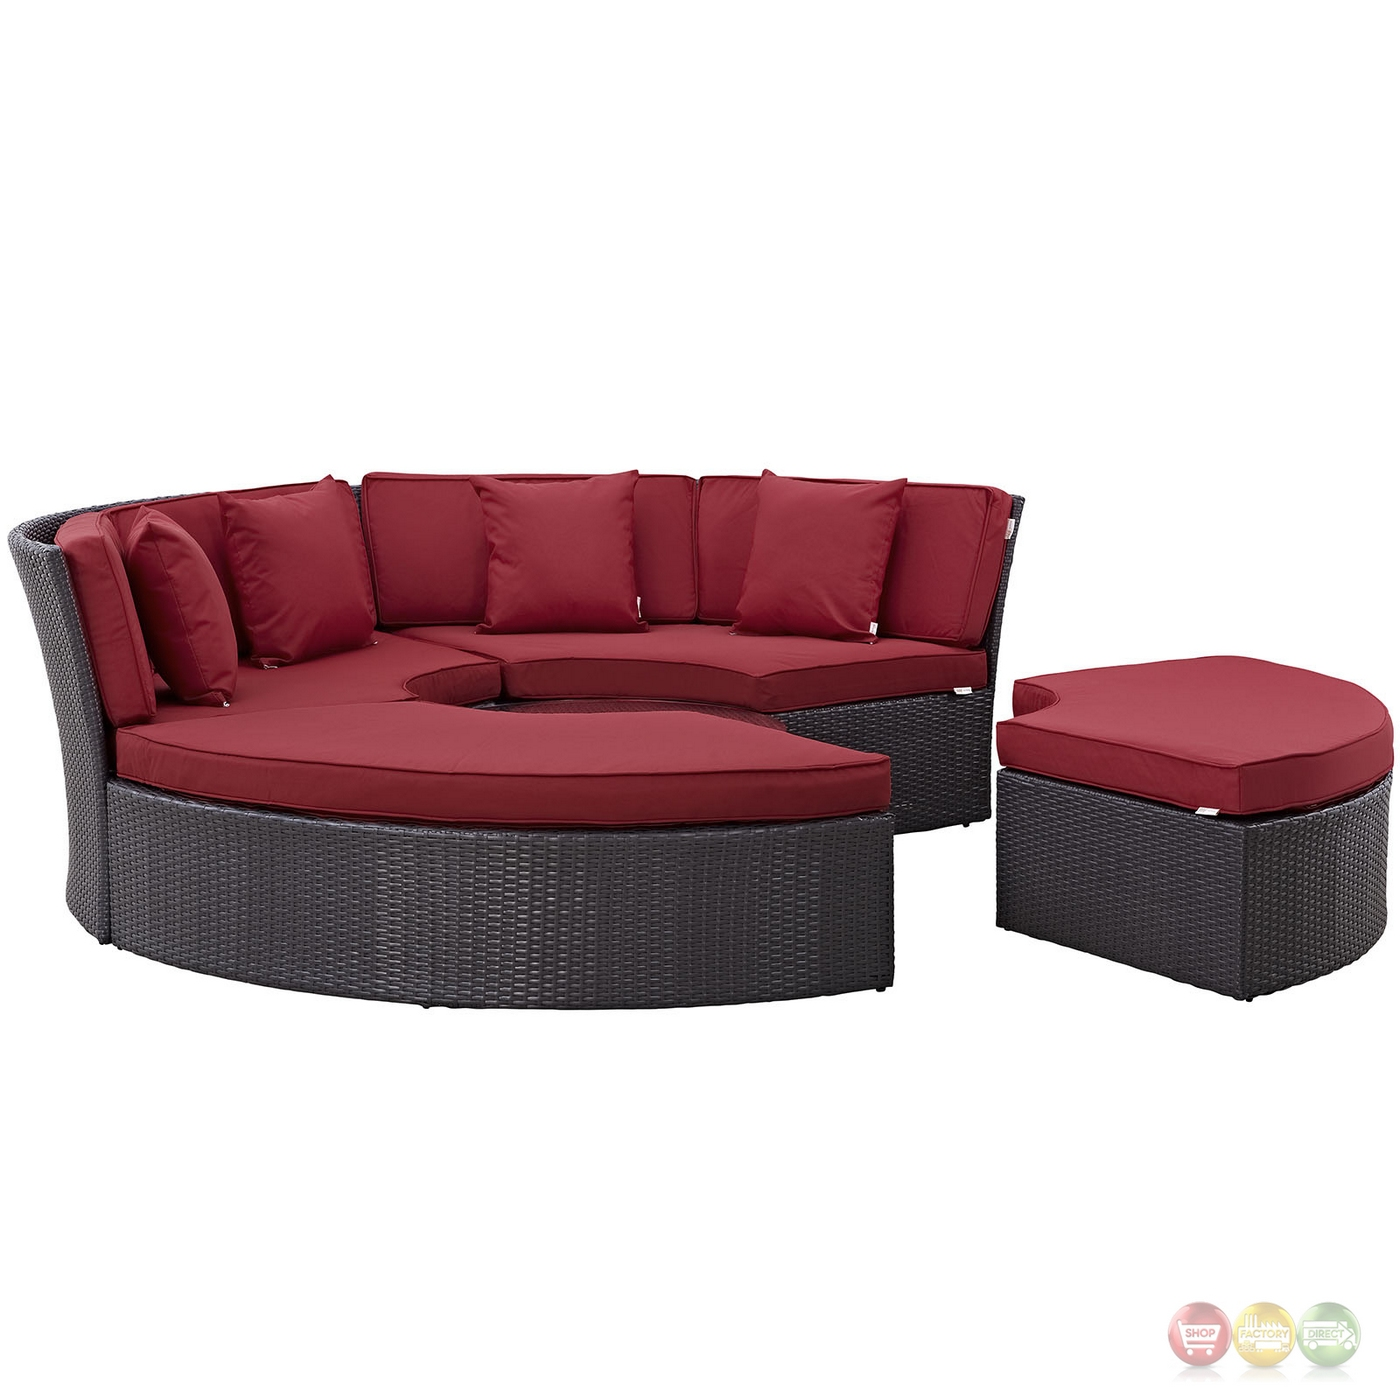 Convene Modular Circular Outdoor Patio Daybed Set With